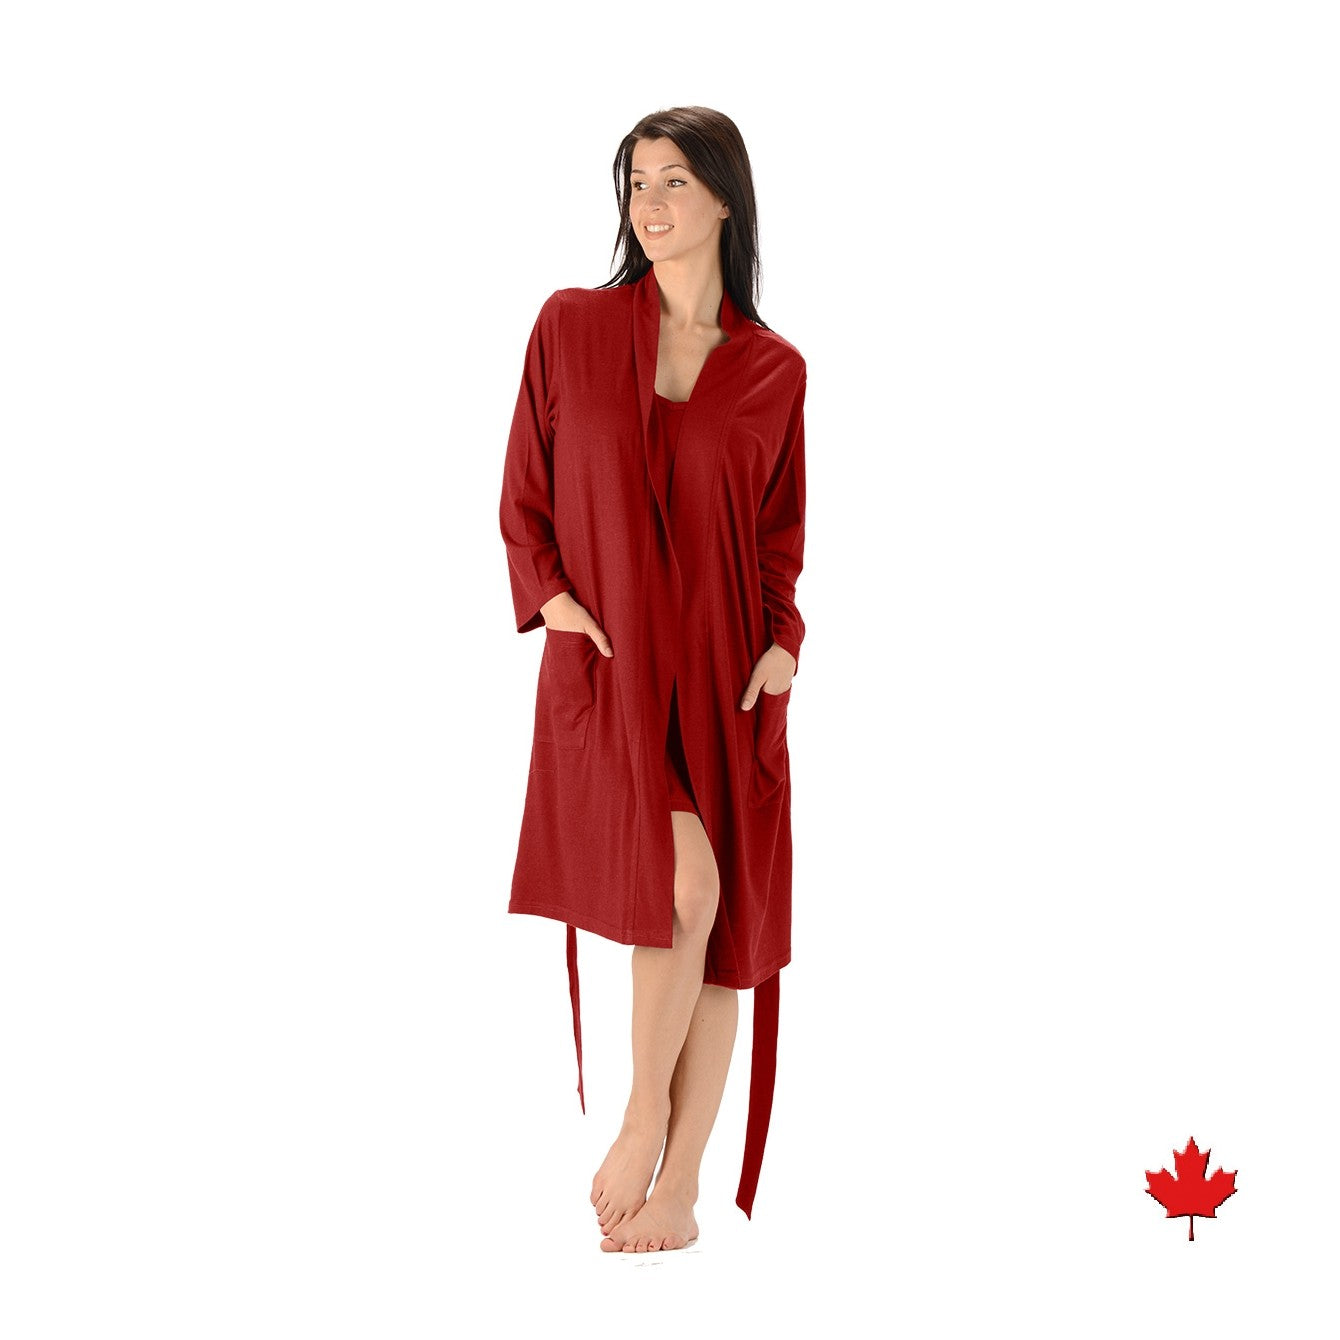 Lightweight bamboo and organic cotton bathrobe with two large front pockets and strap tie in red